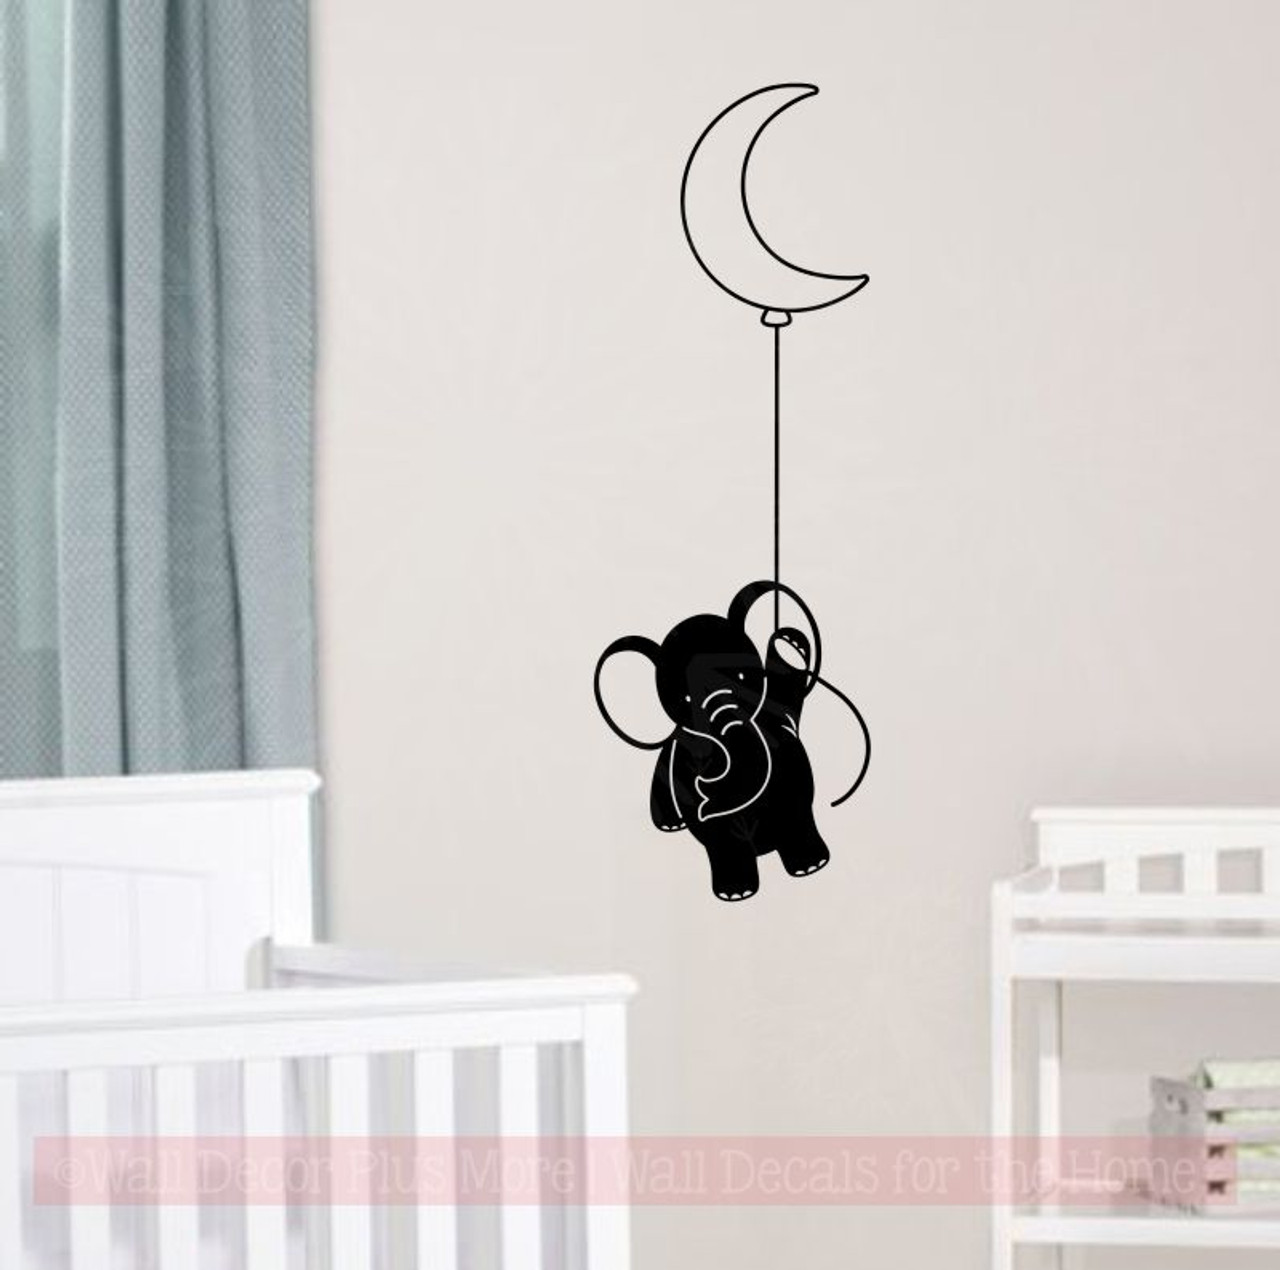 Elephant With Balloon Nursery Decor Vinyl Art Decals Baby Room Stickers